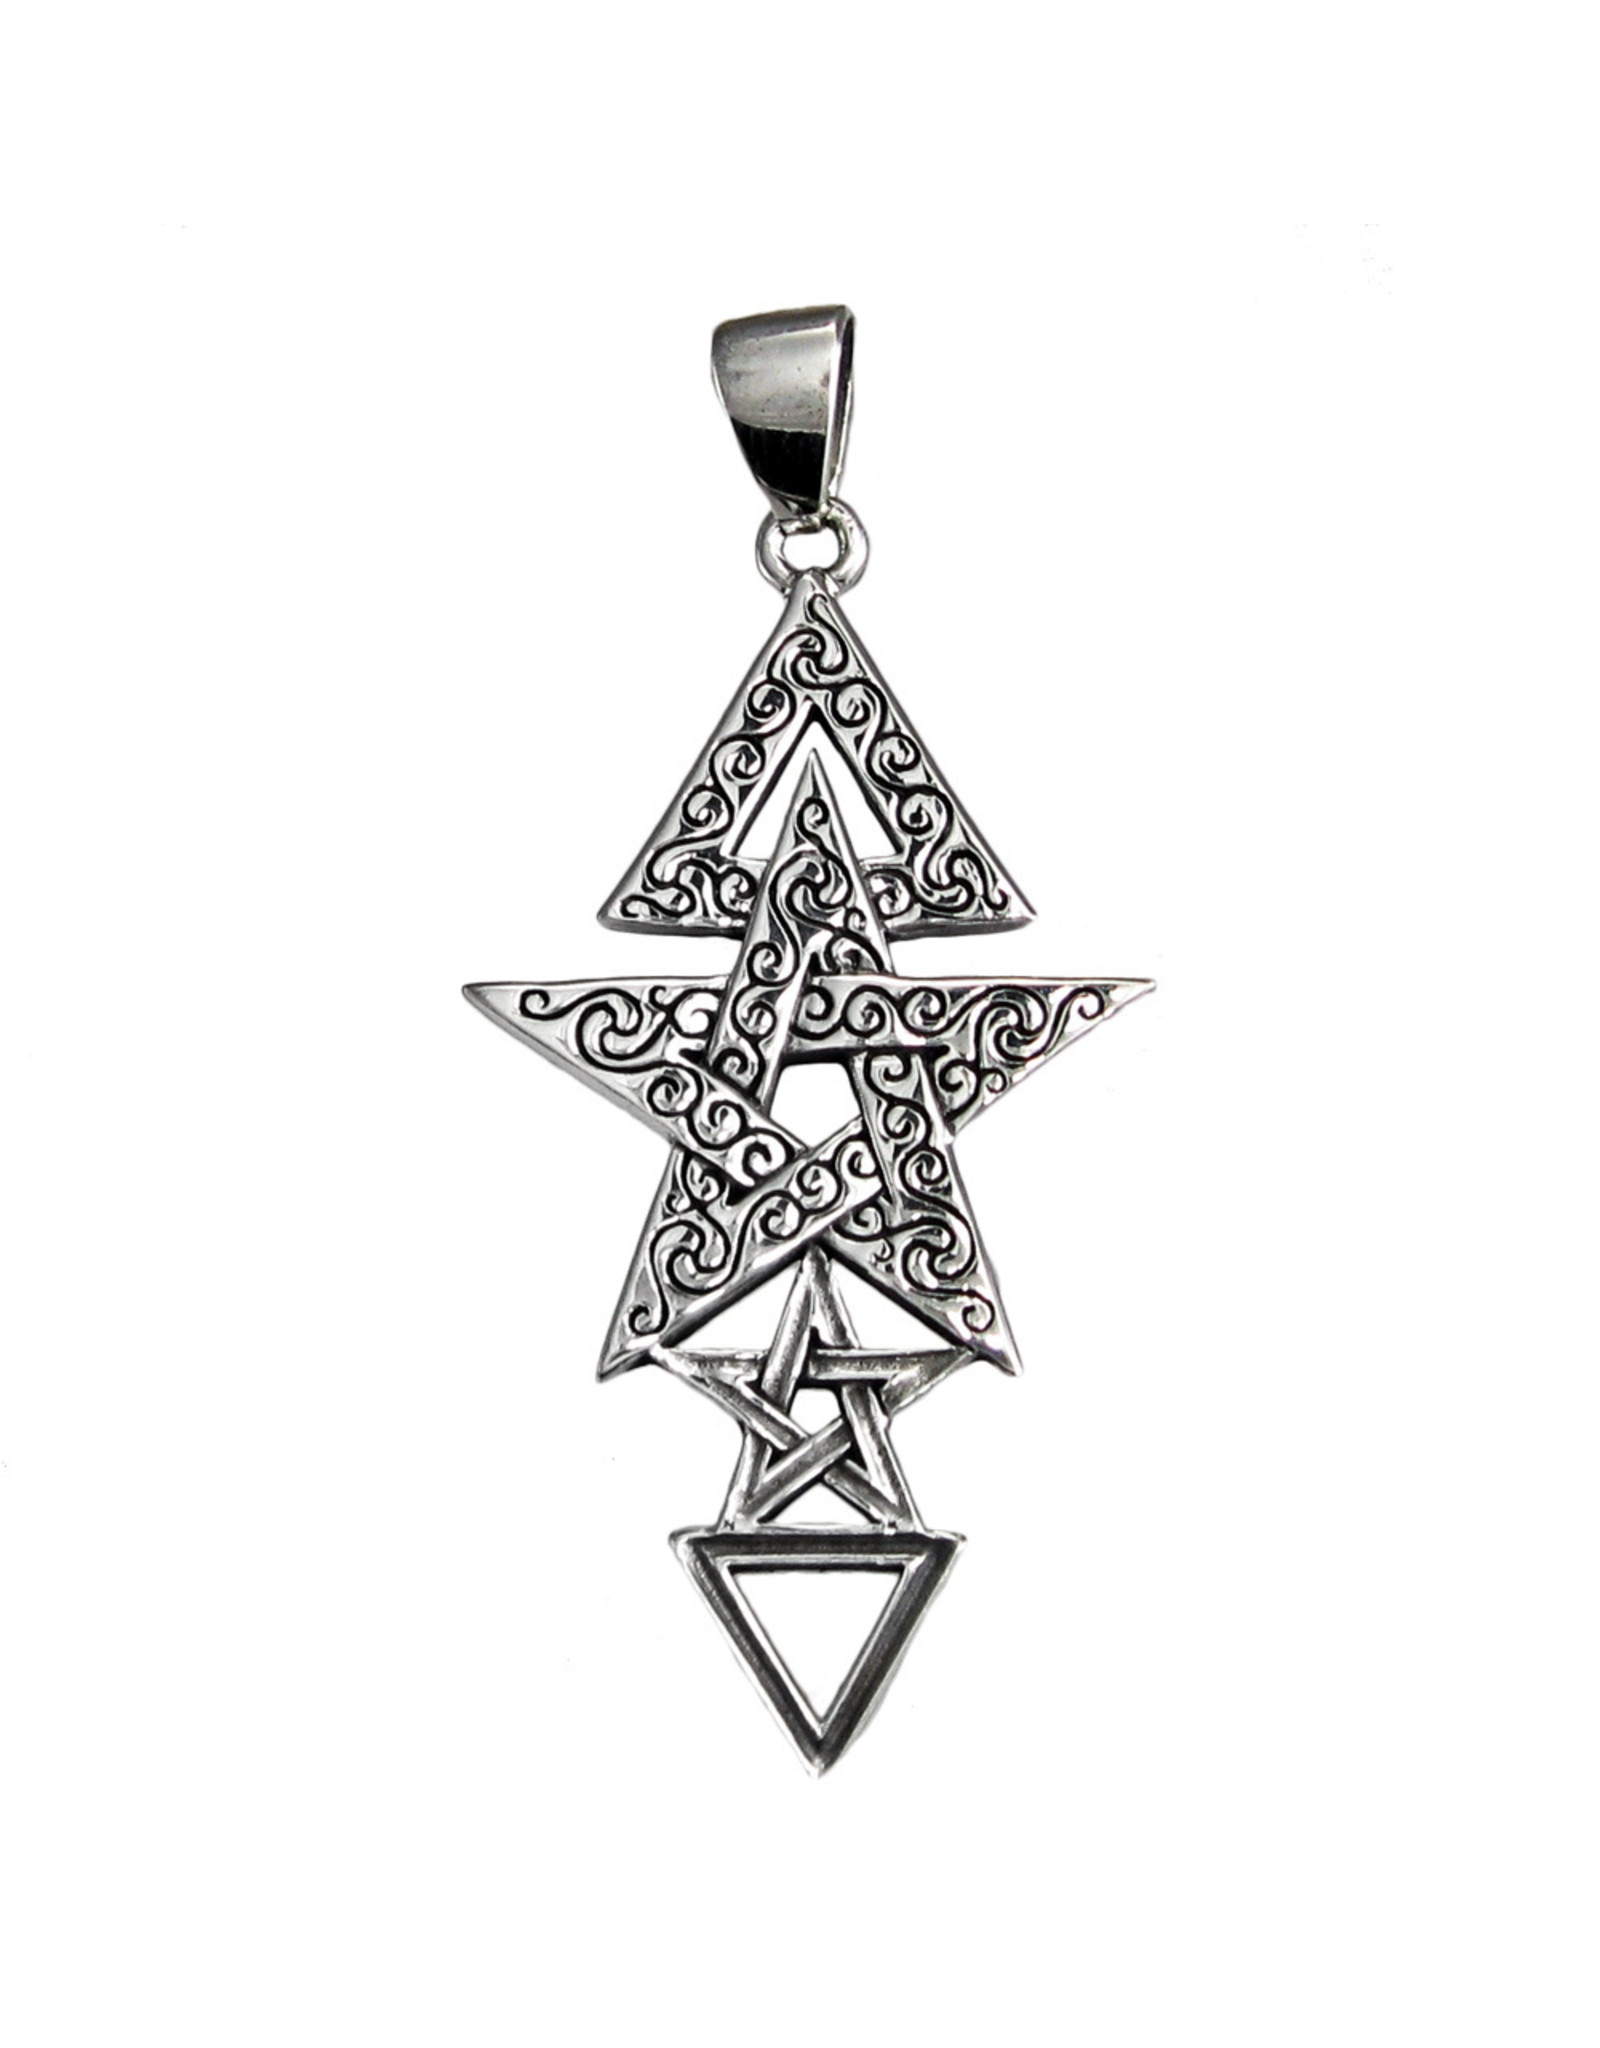 Third Degree Pentacle Pendant in Sterling Silver